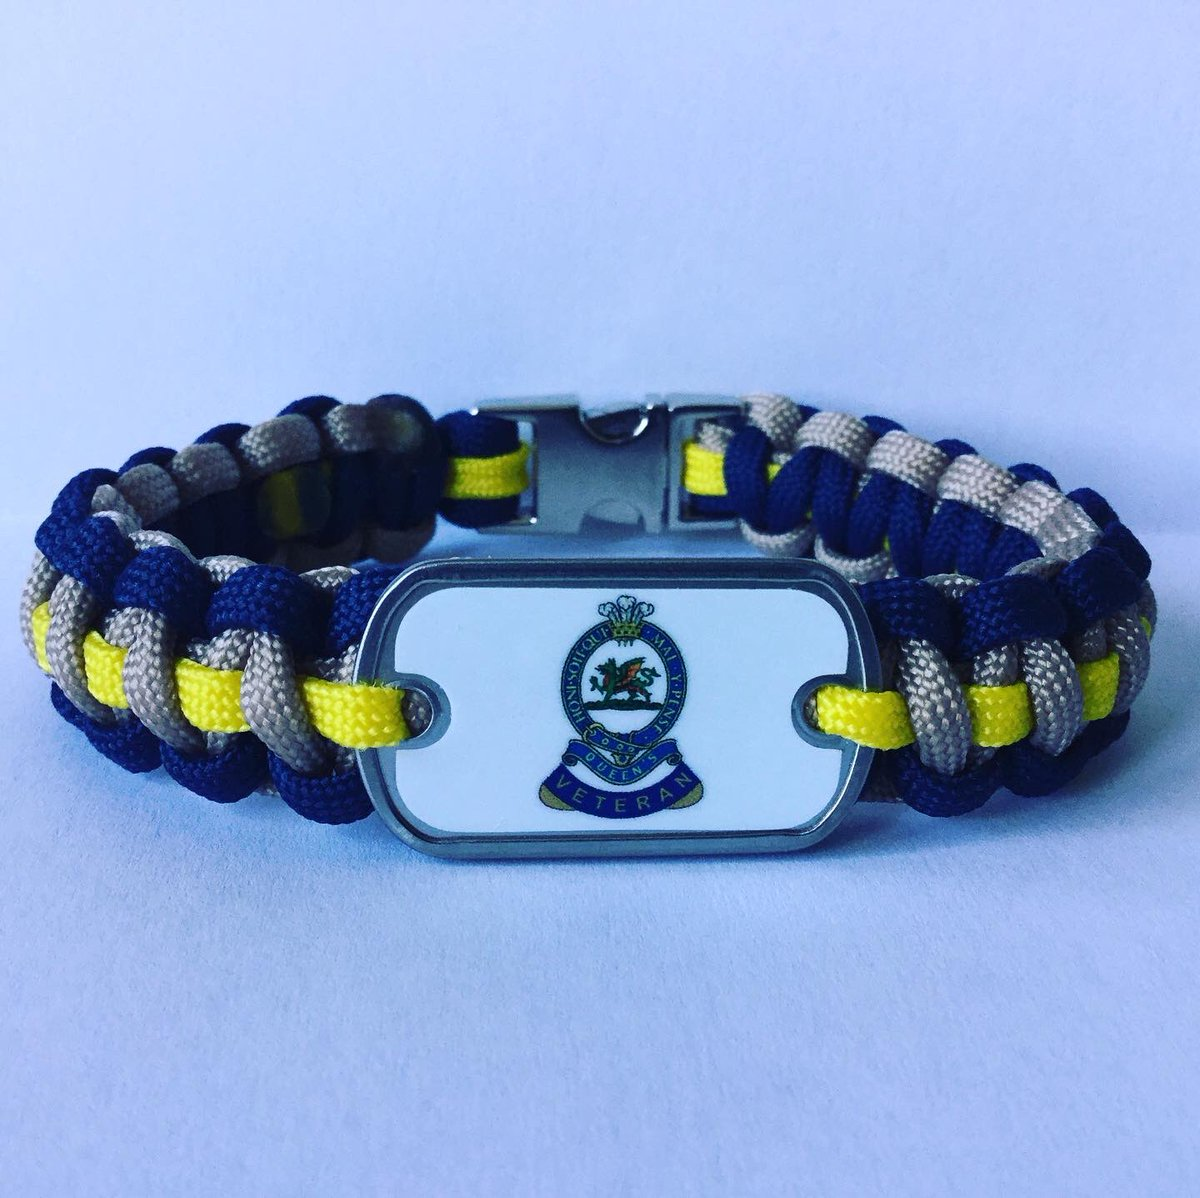 @QueensRegt #QueensRegt PARACORD BRACELET All my paracord bracelets are handmade by myself an ex Soldier who suffers from PTSD if anyone would like to support me or buy one of my bracelets please contact me directly for details #PTSD #MentalHealthAwareness #ItsOkNotToBeOk